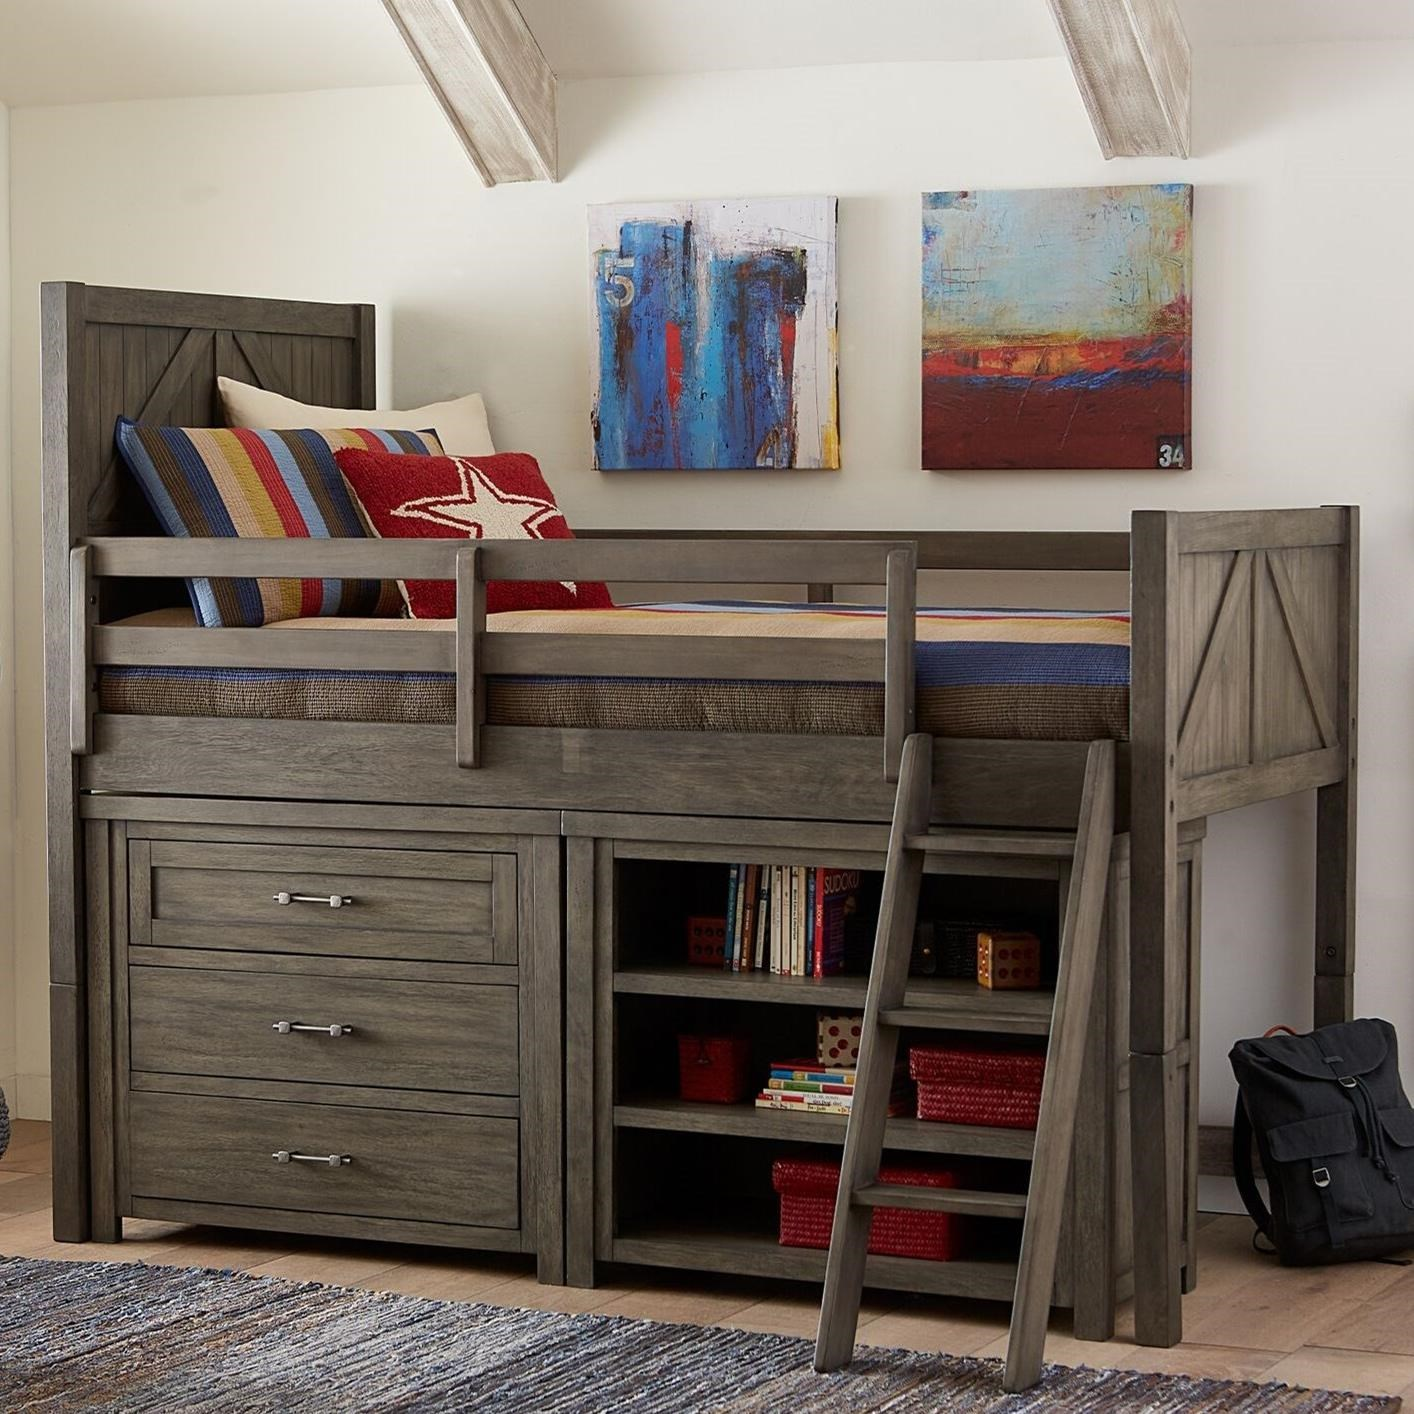 Bunkhouse Twin Mid Loft Bed with Dresser and Bookcase by Legacy Classic Kids at Suburban Furniture